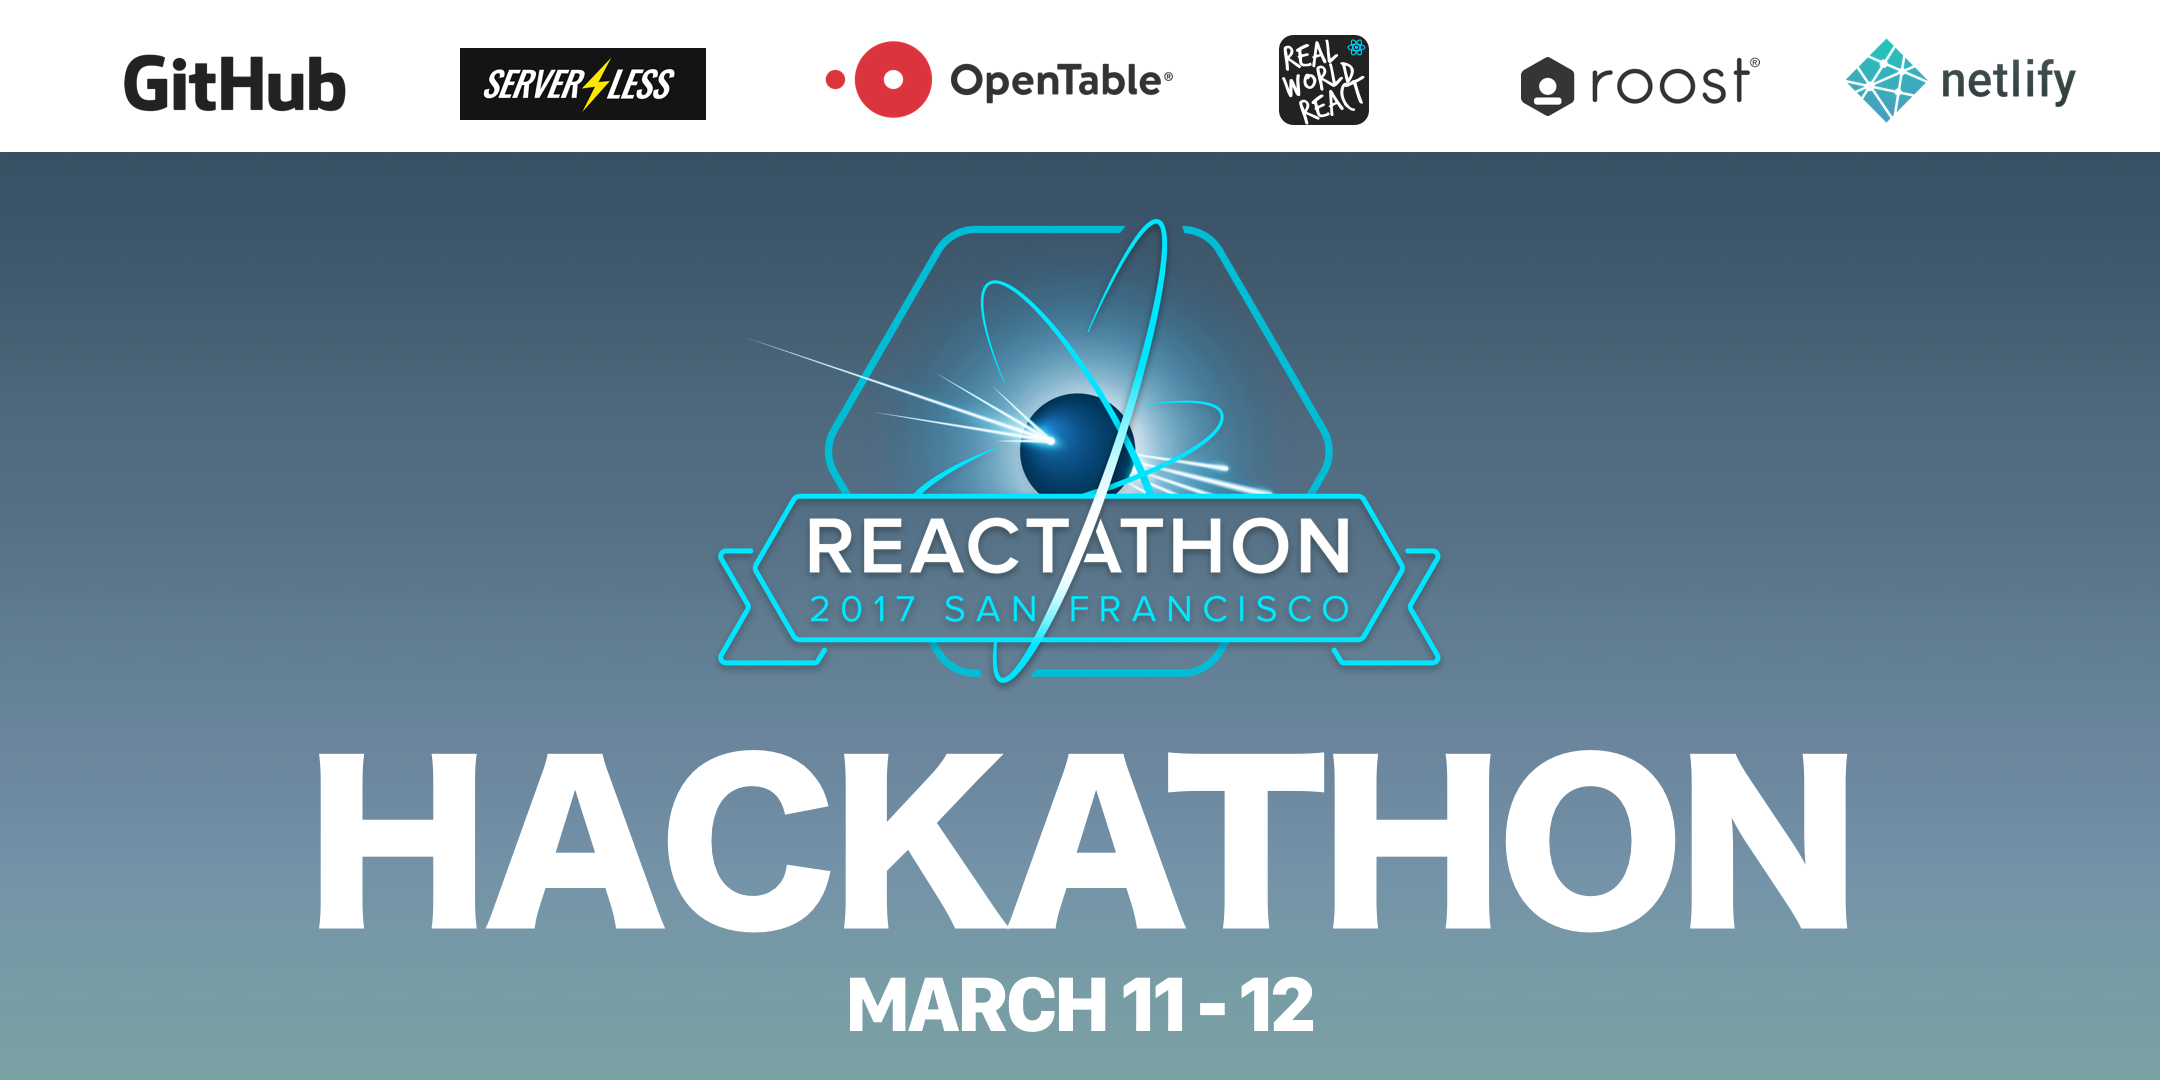 GitHub Realworldreactreactathon Information And Resources - Open table rules